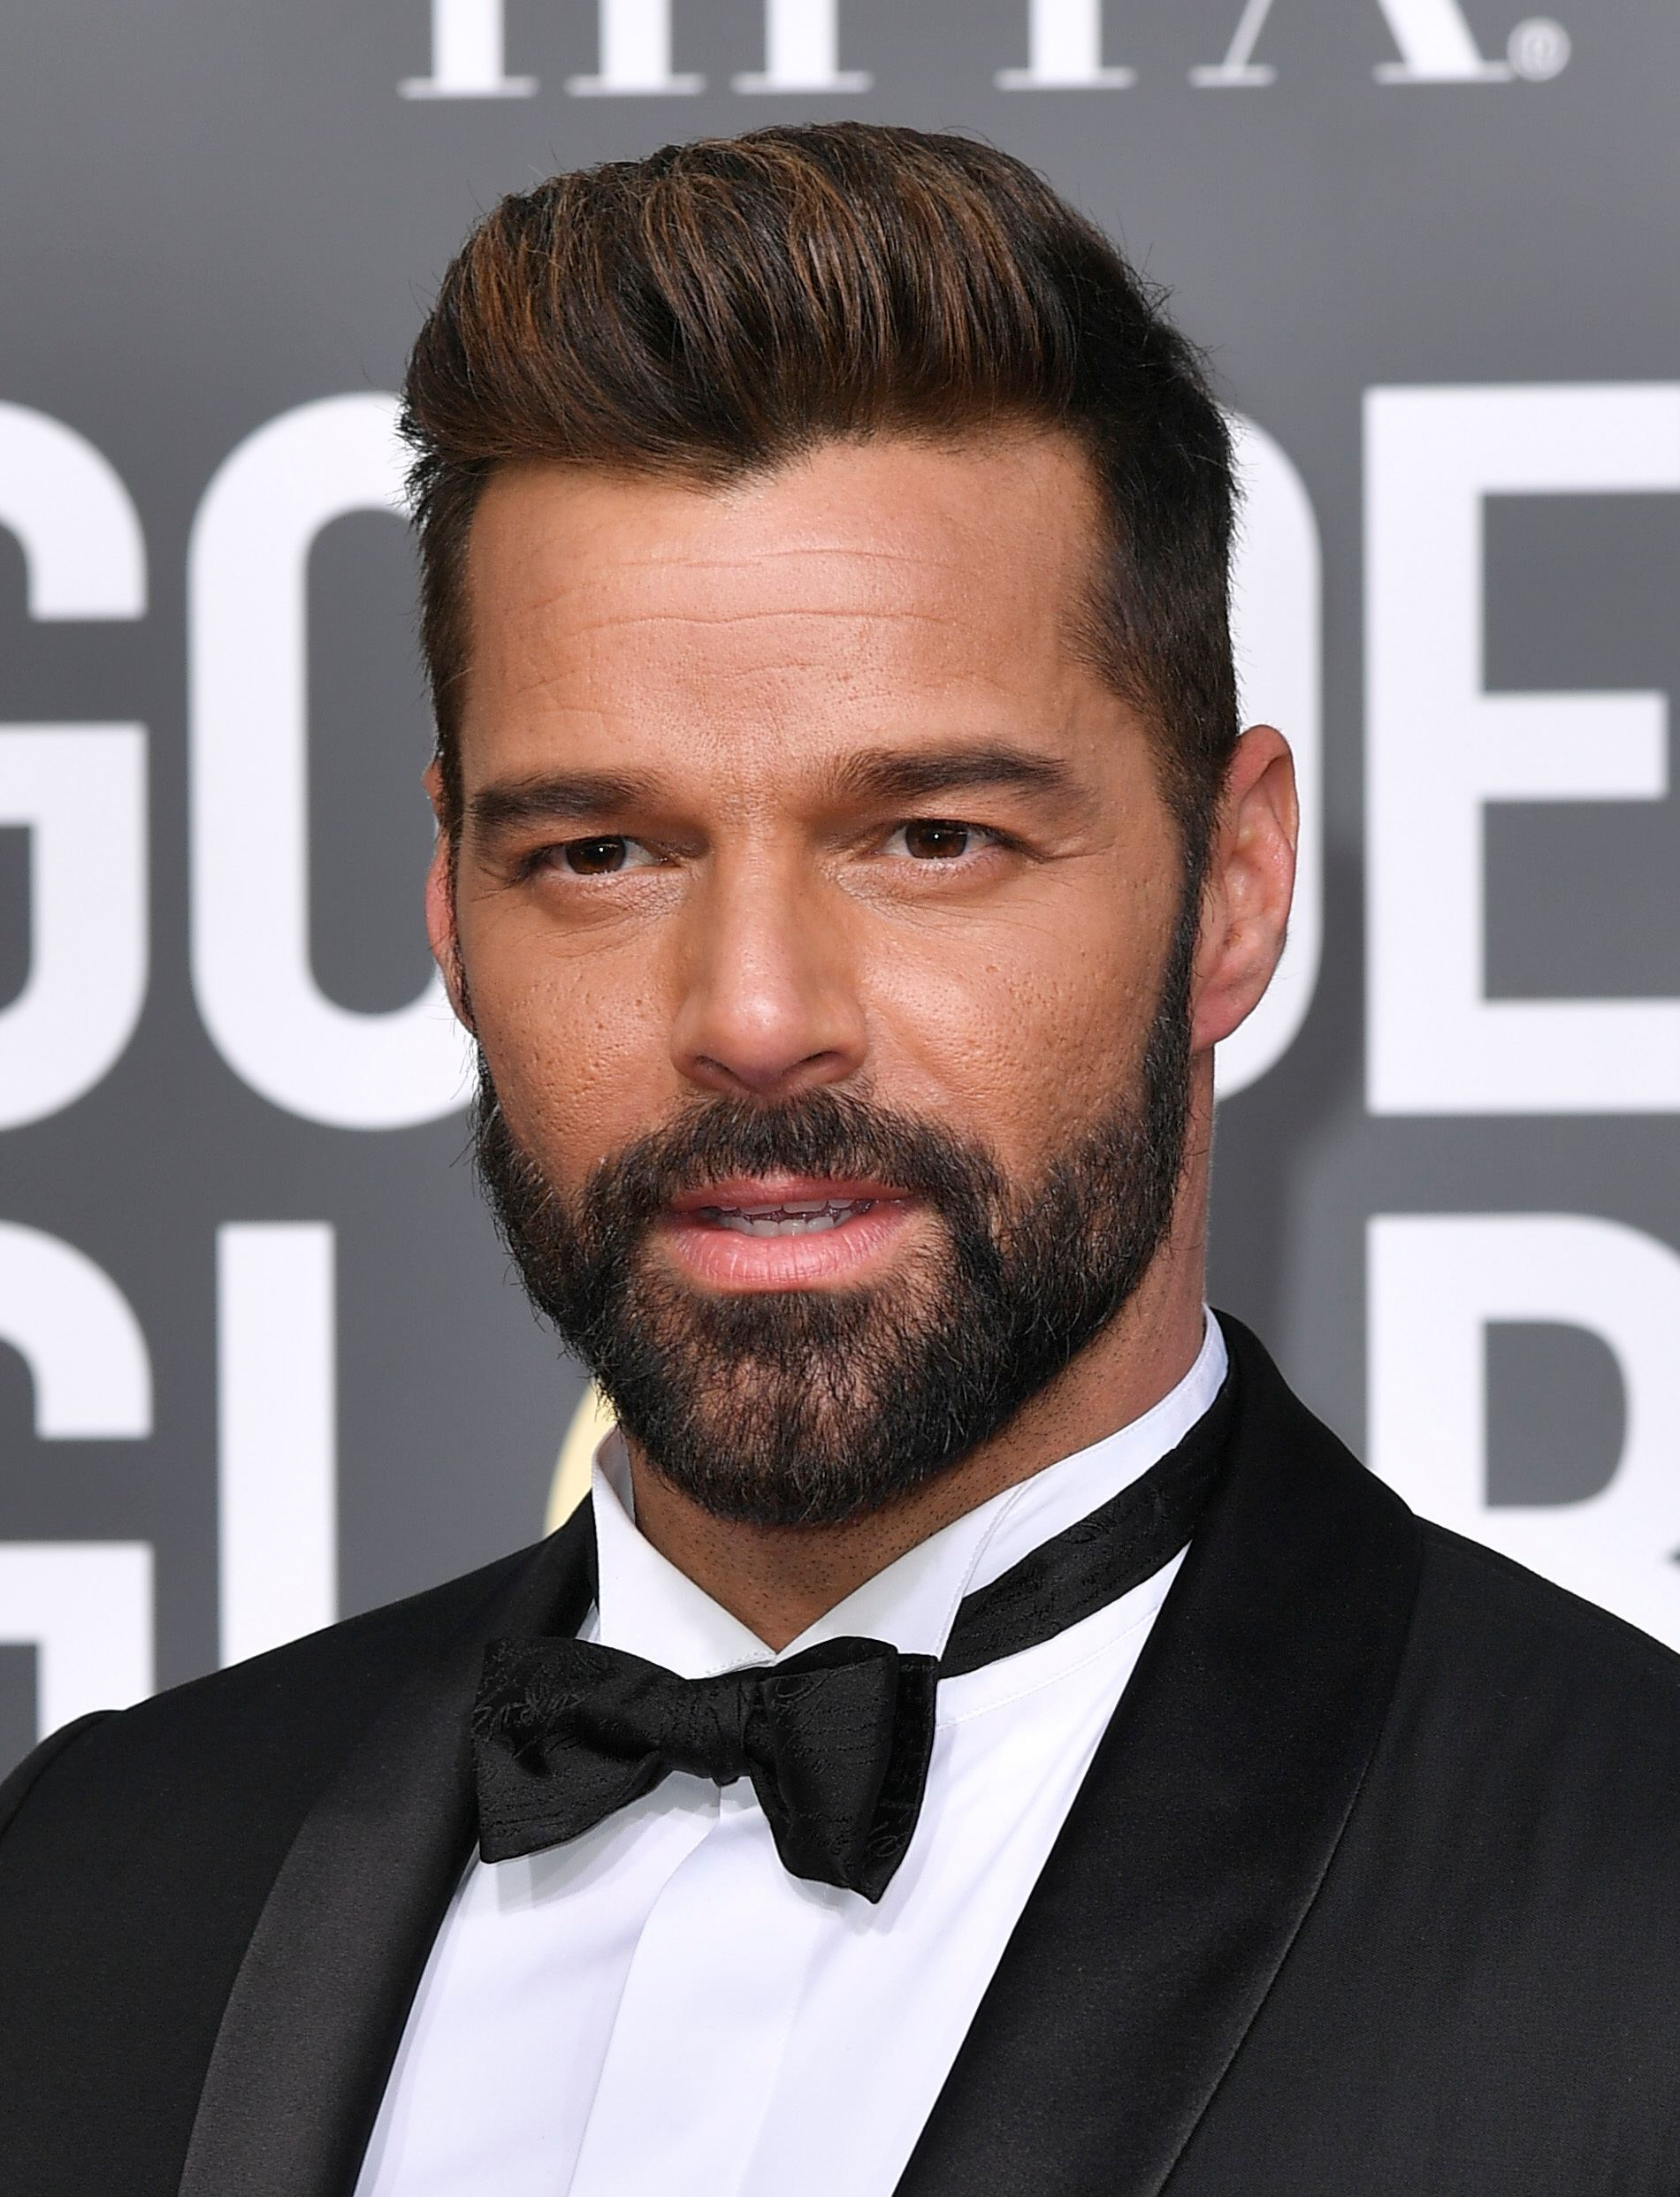 Golden Globes 2019: Close-up of Ricky Martin with brown hair in a quiff with facial hair, wearing a tux